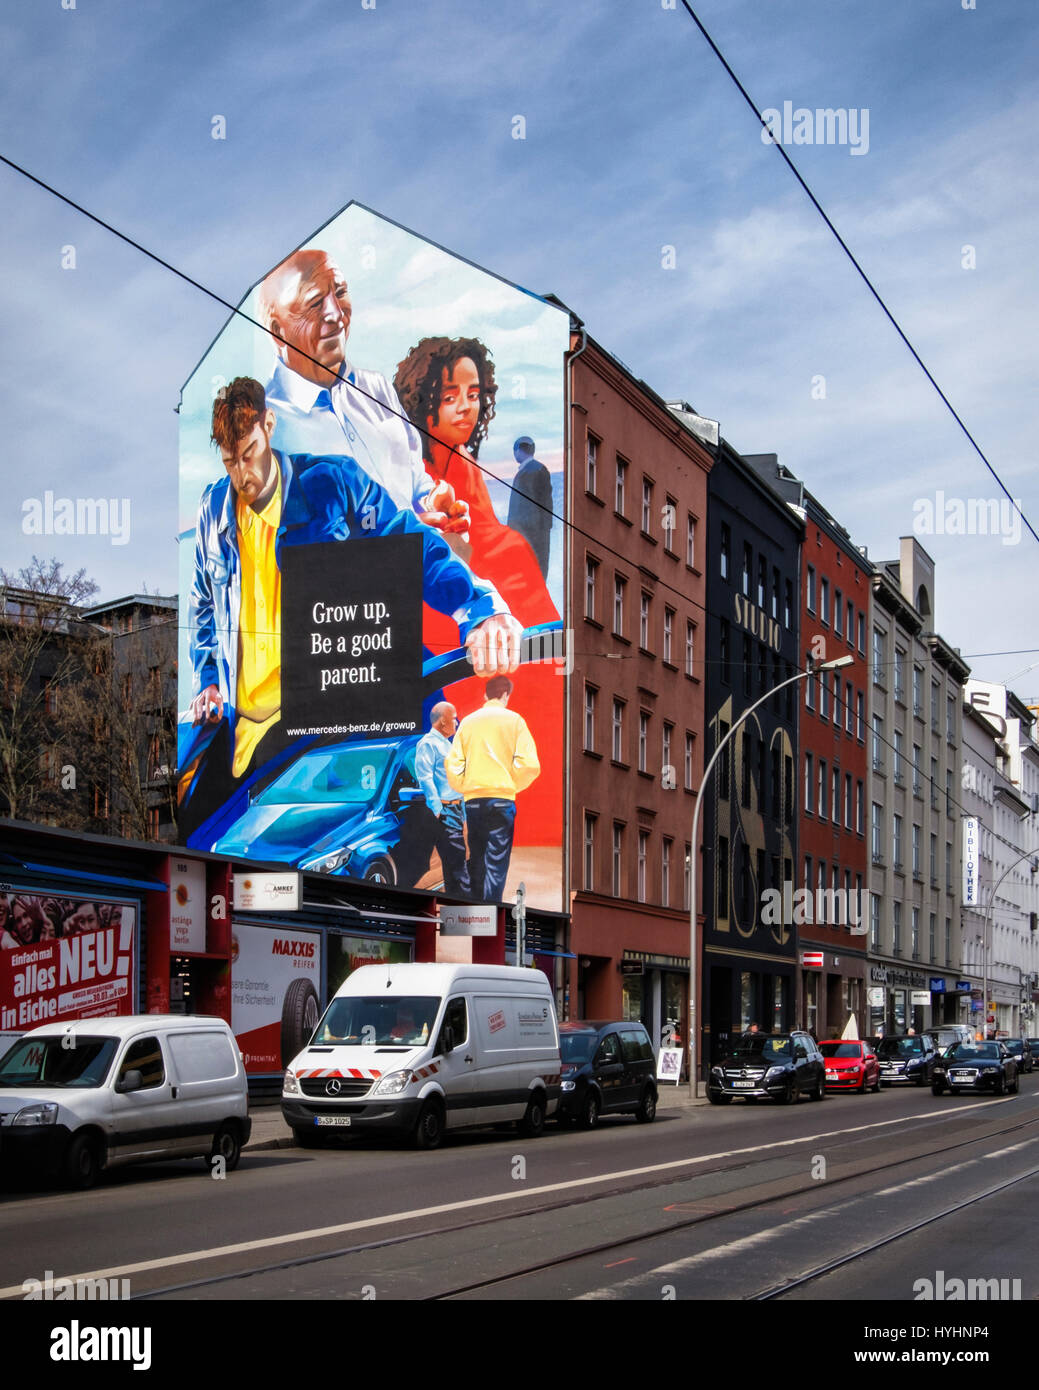 Giant mural Mercedes Benz advertisement in Mitte Berlin. Advertising Slogan,Grow up,be a good parent - Stock Image